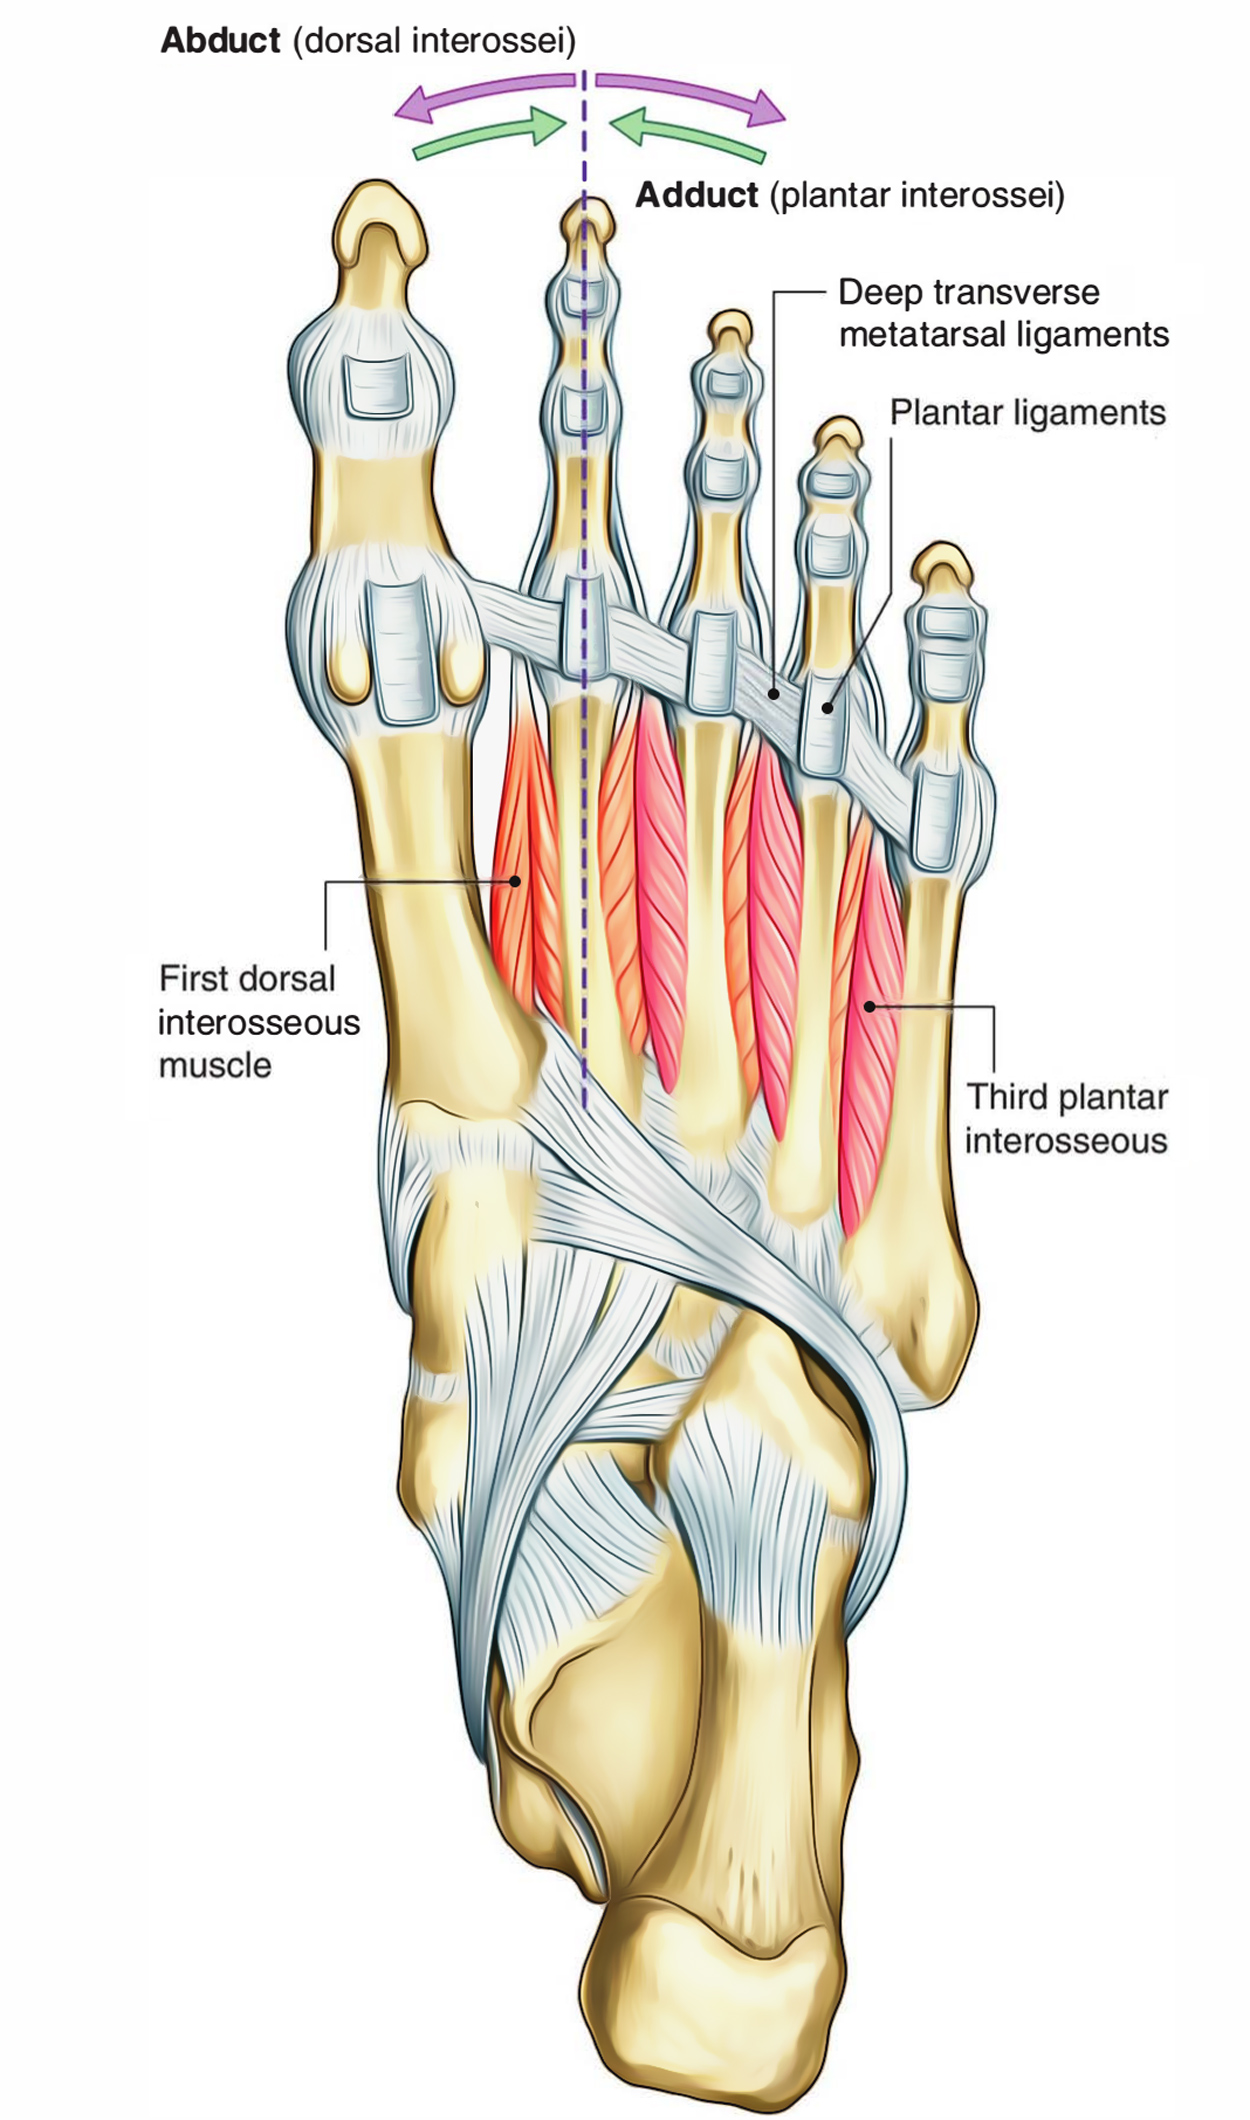 Easy Notes On 【Plantar Interossei】Learn in Just 3 Minutes!